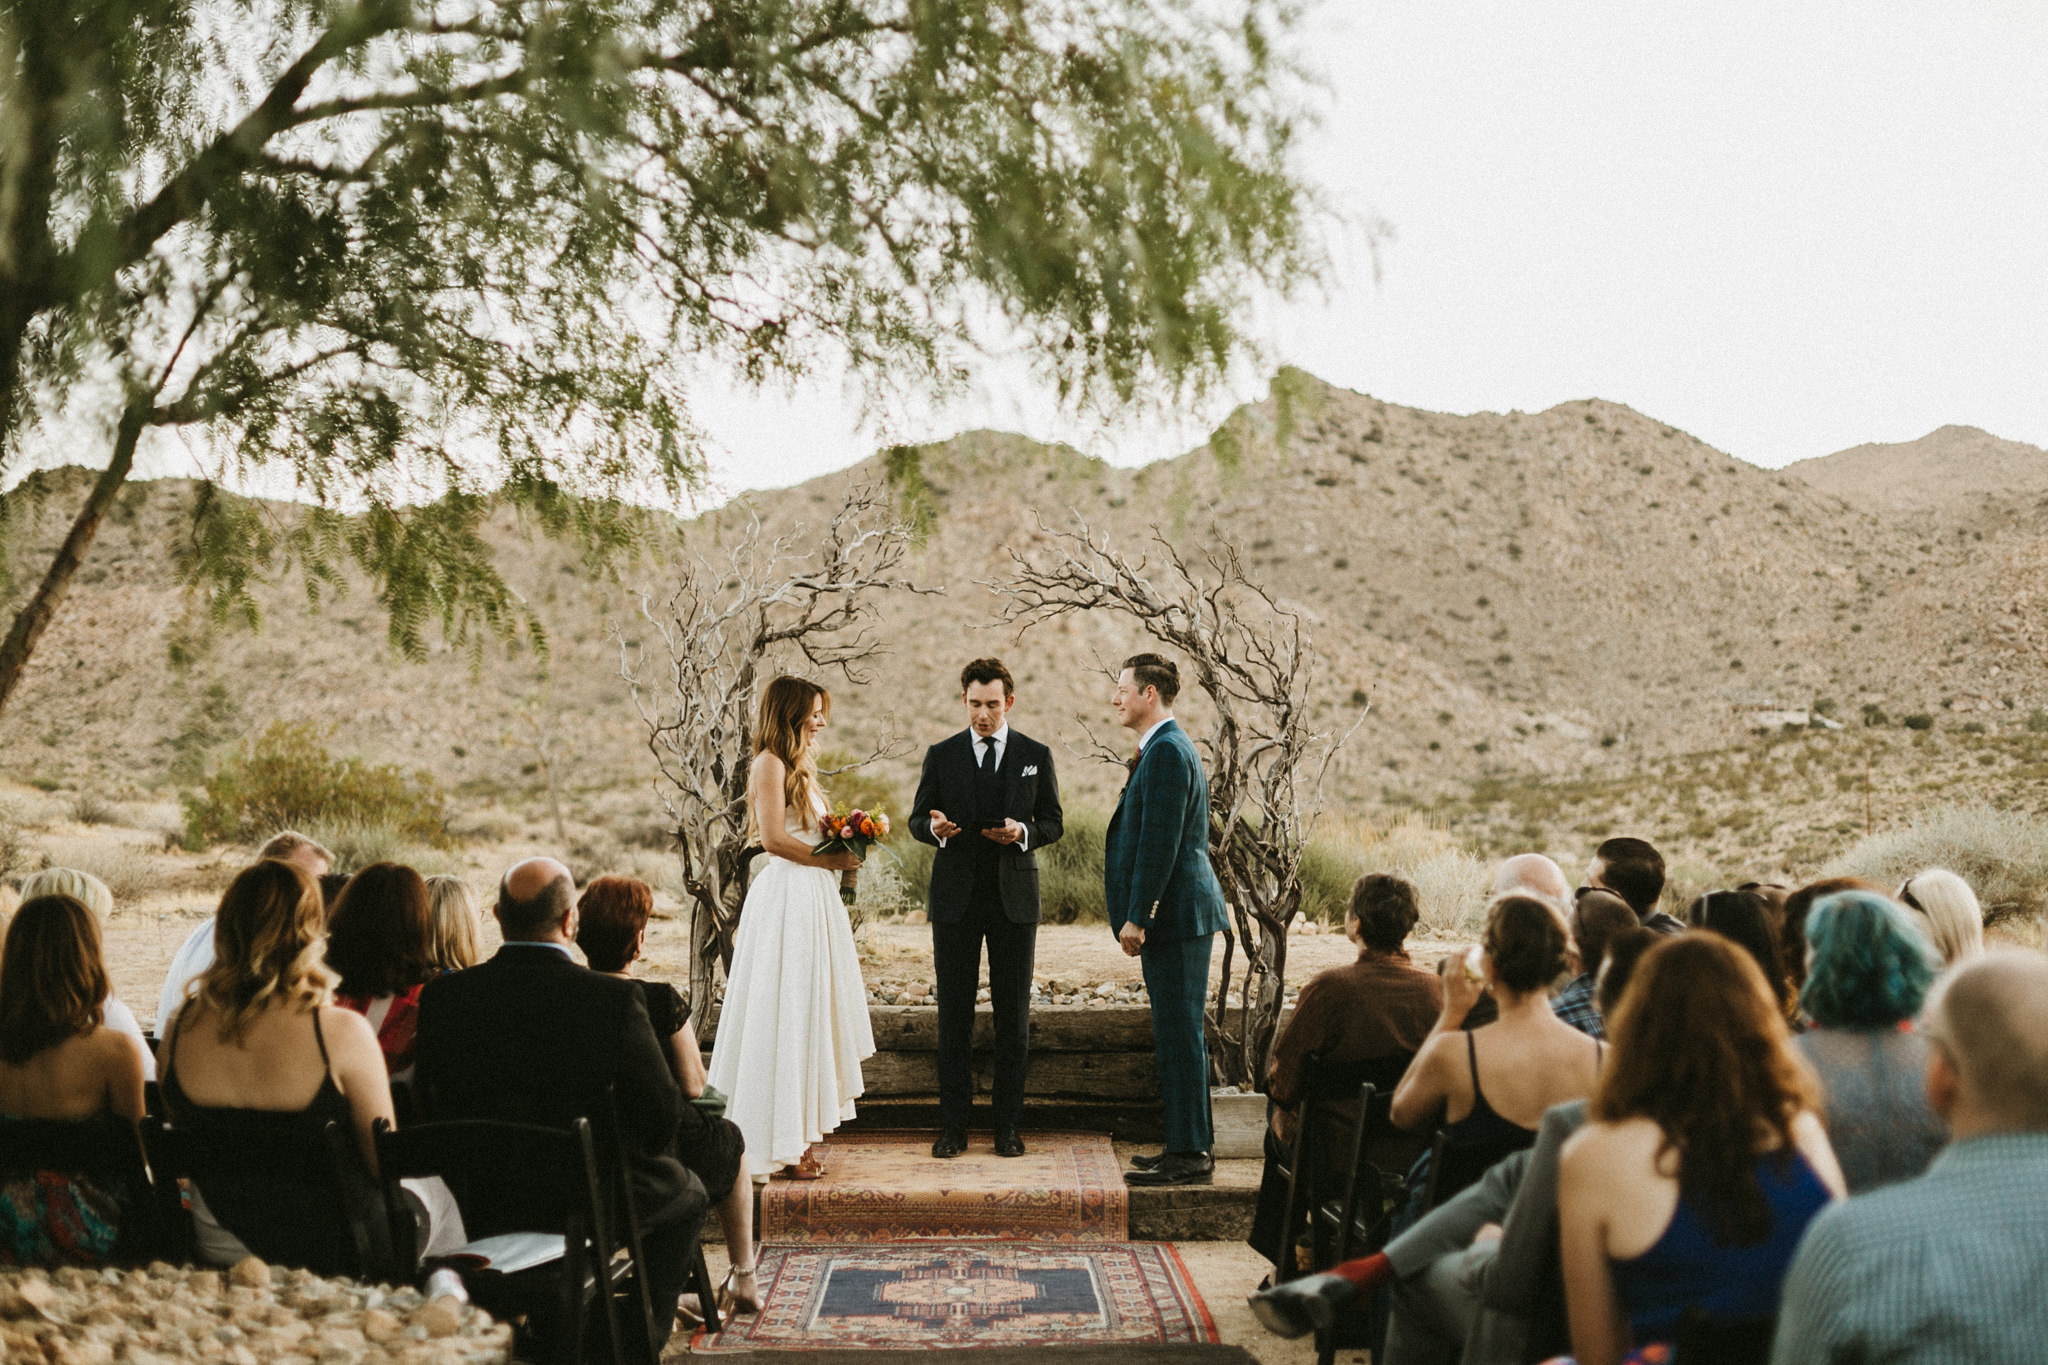 like-morning-sun-photography-sacred-sands-joshua-tree-california-wedding025.jpg